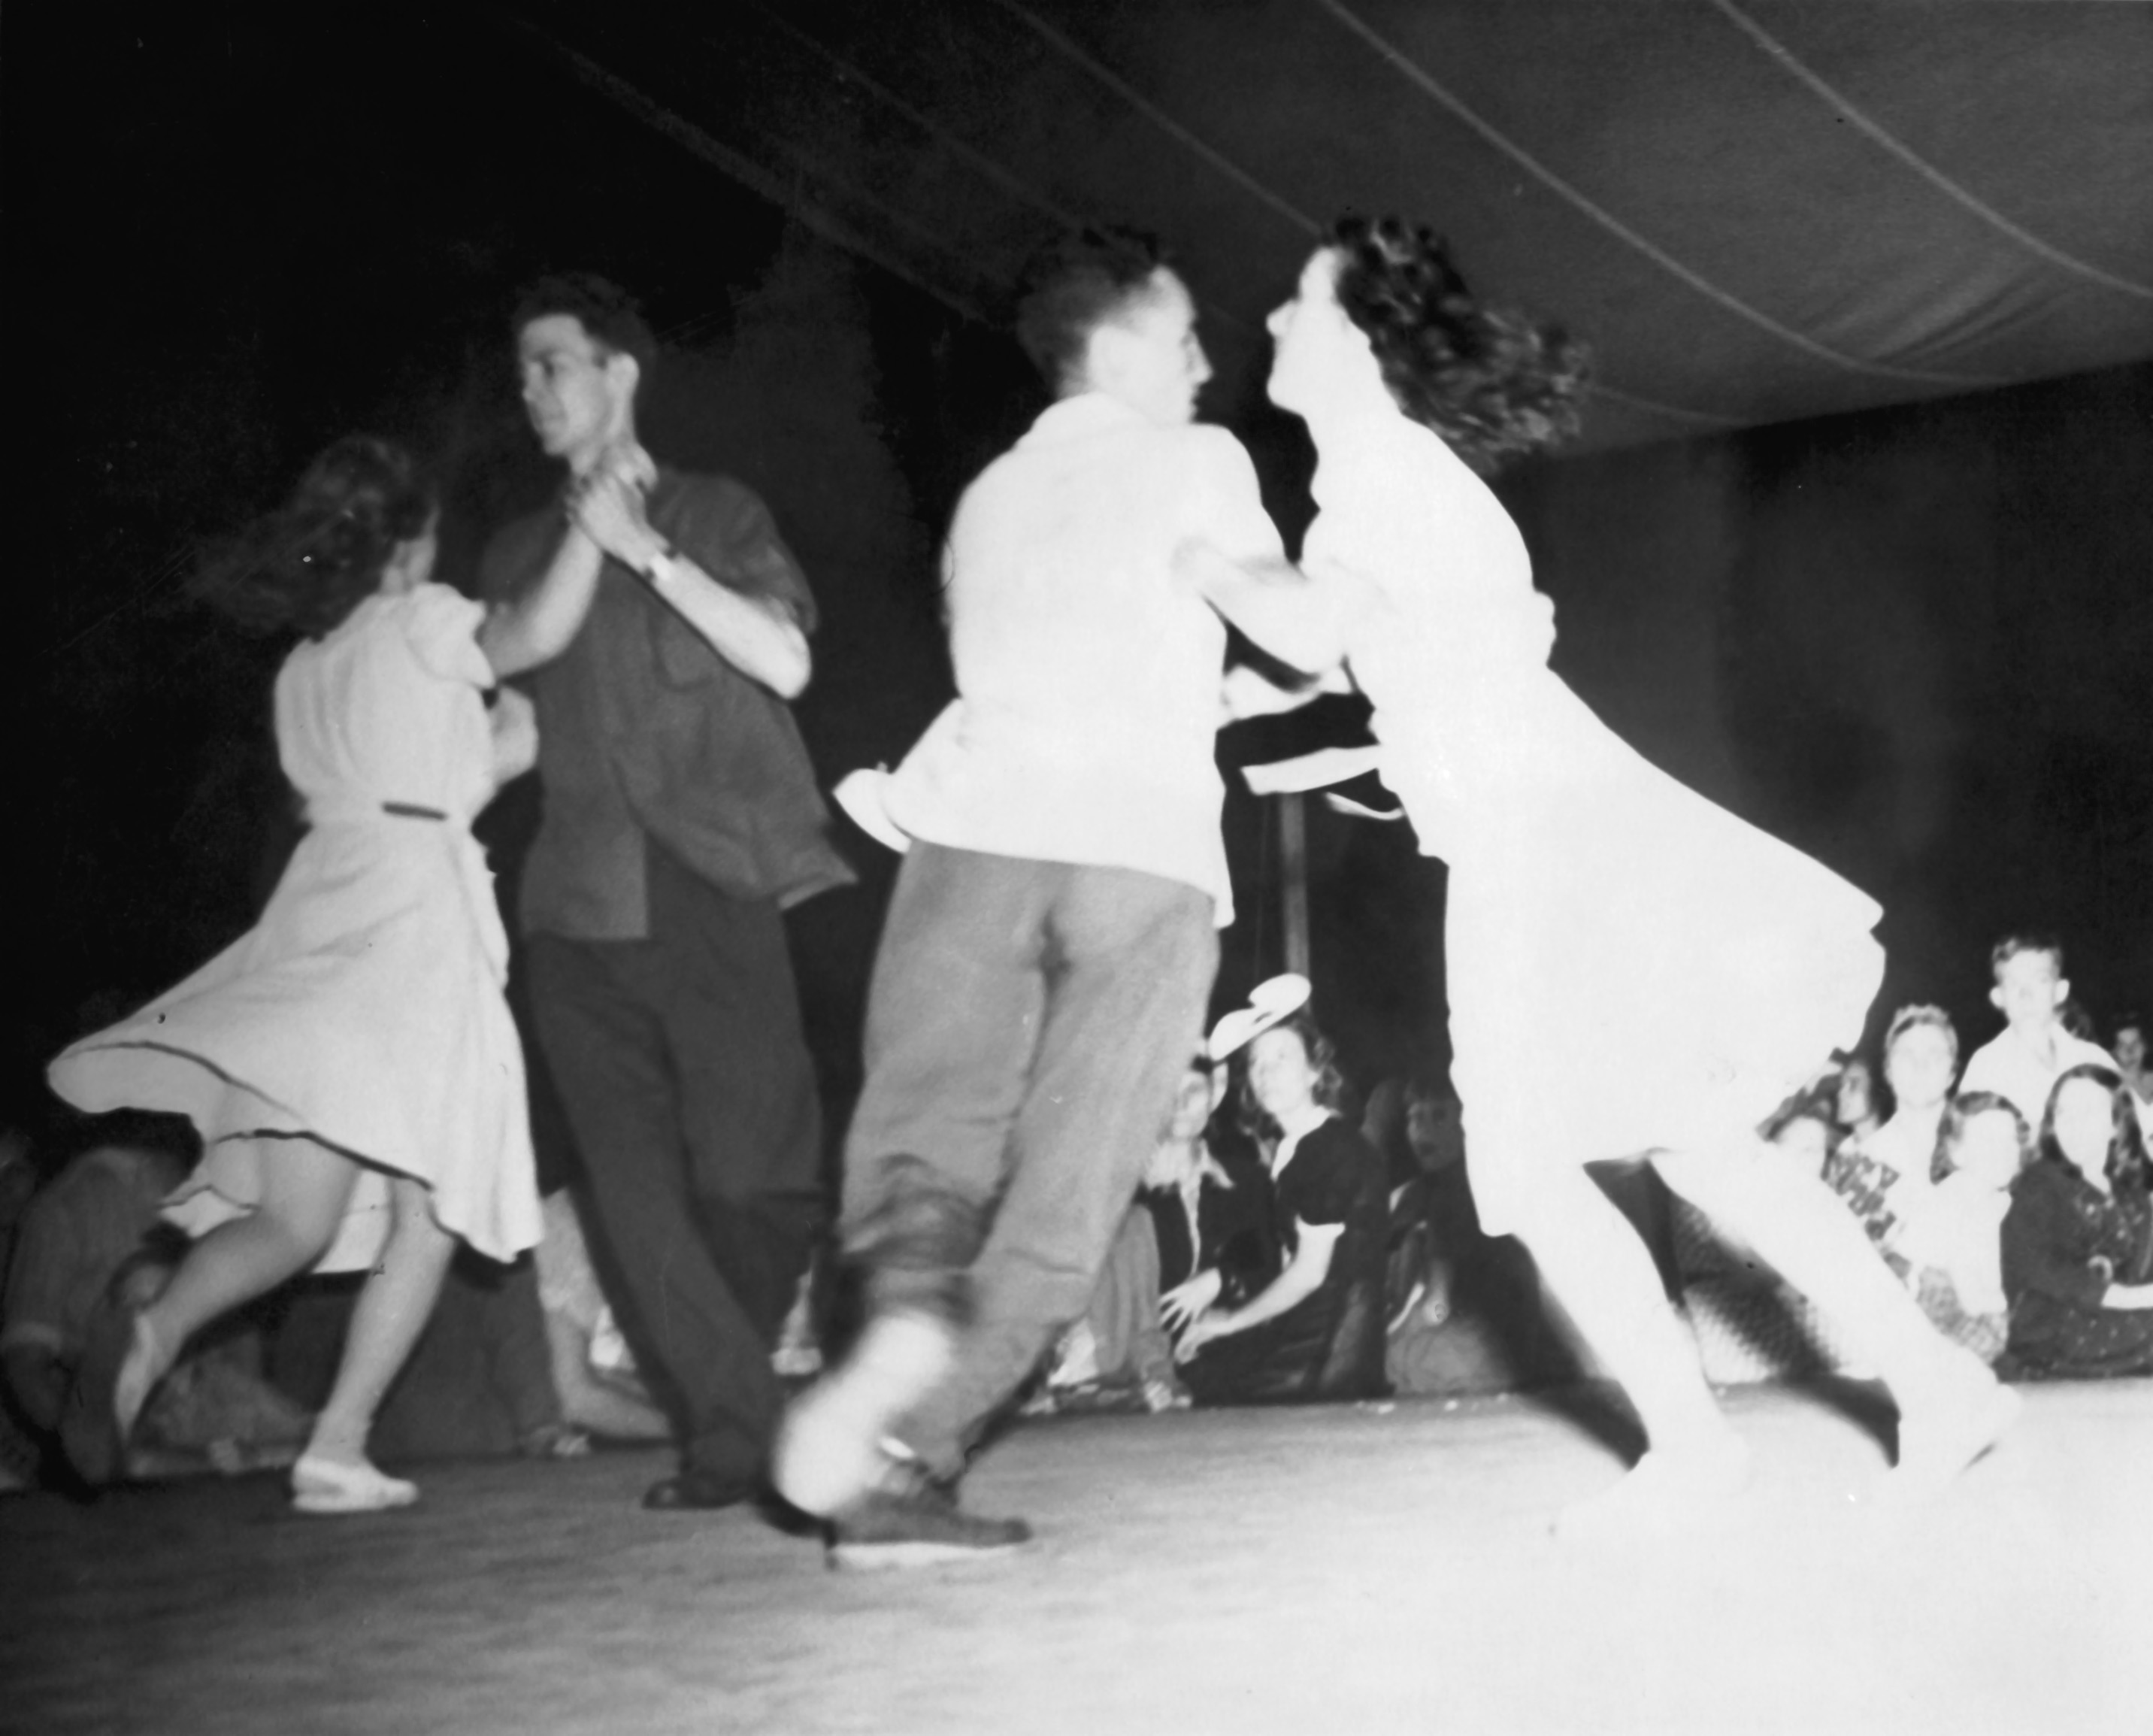 File:John and Ruby Lomax, Square dance gone wild ...